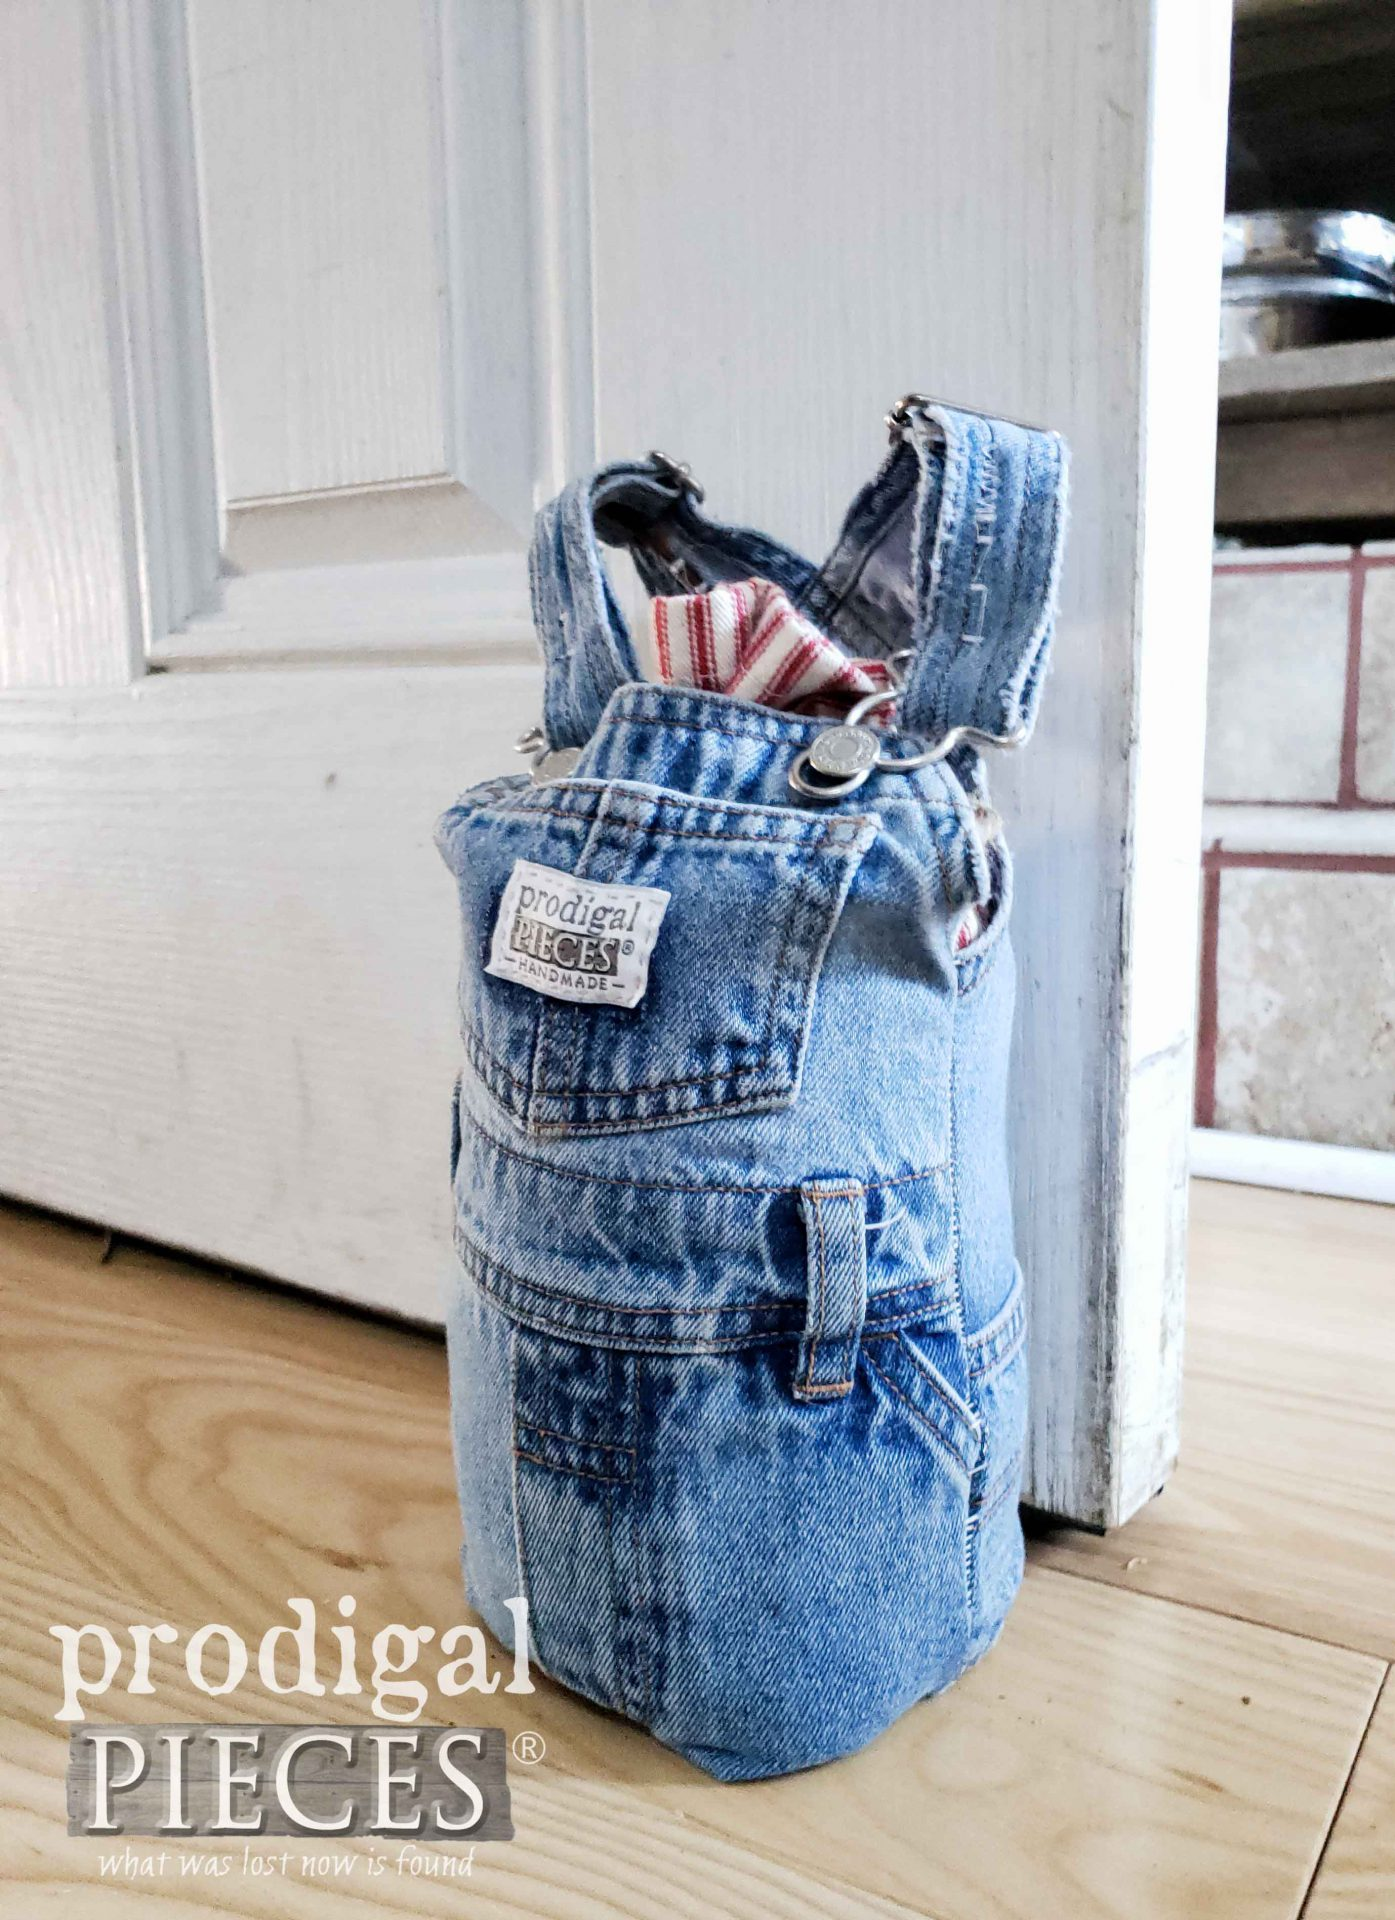 Denim Baby Bib DIY Doorstop created by Larissa of Prodigal Pieces | prodigalpieces.com #prodigalpieces #diy #home #homedecor #upcycle #refashion